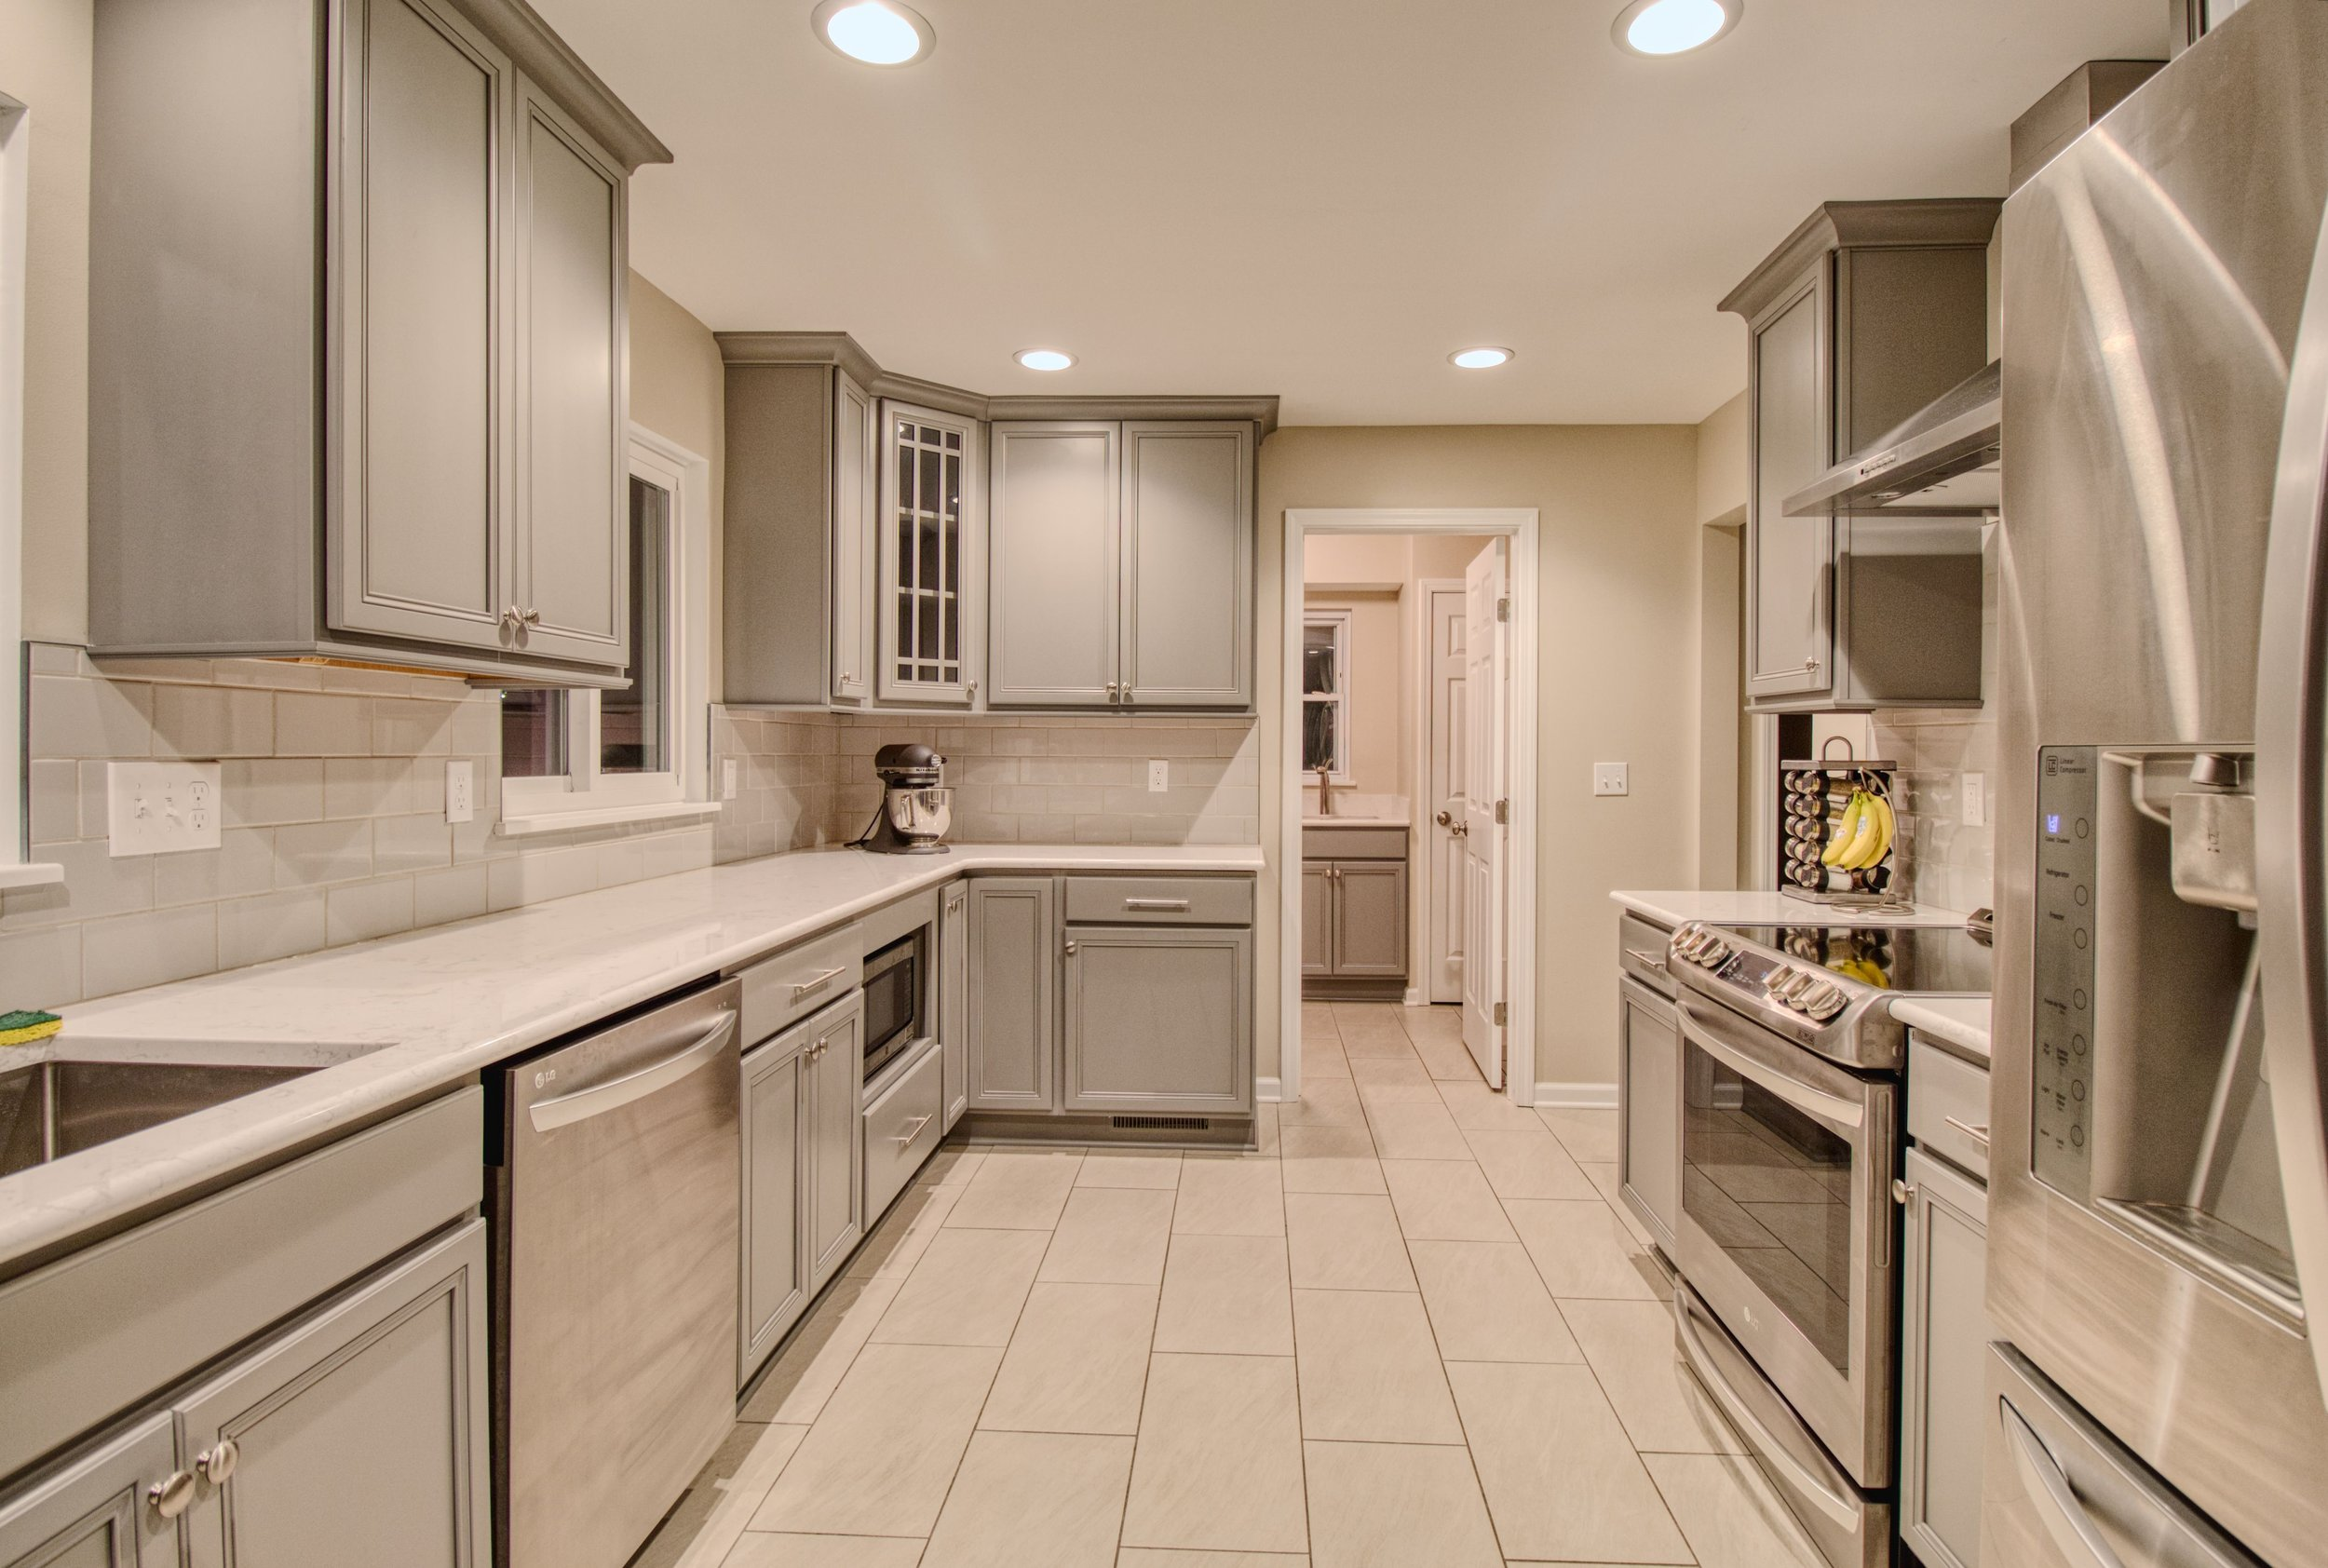 1st Place Residential Kitchen $45-60K